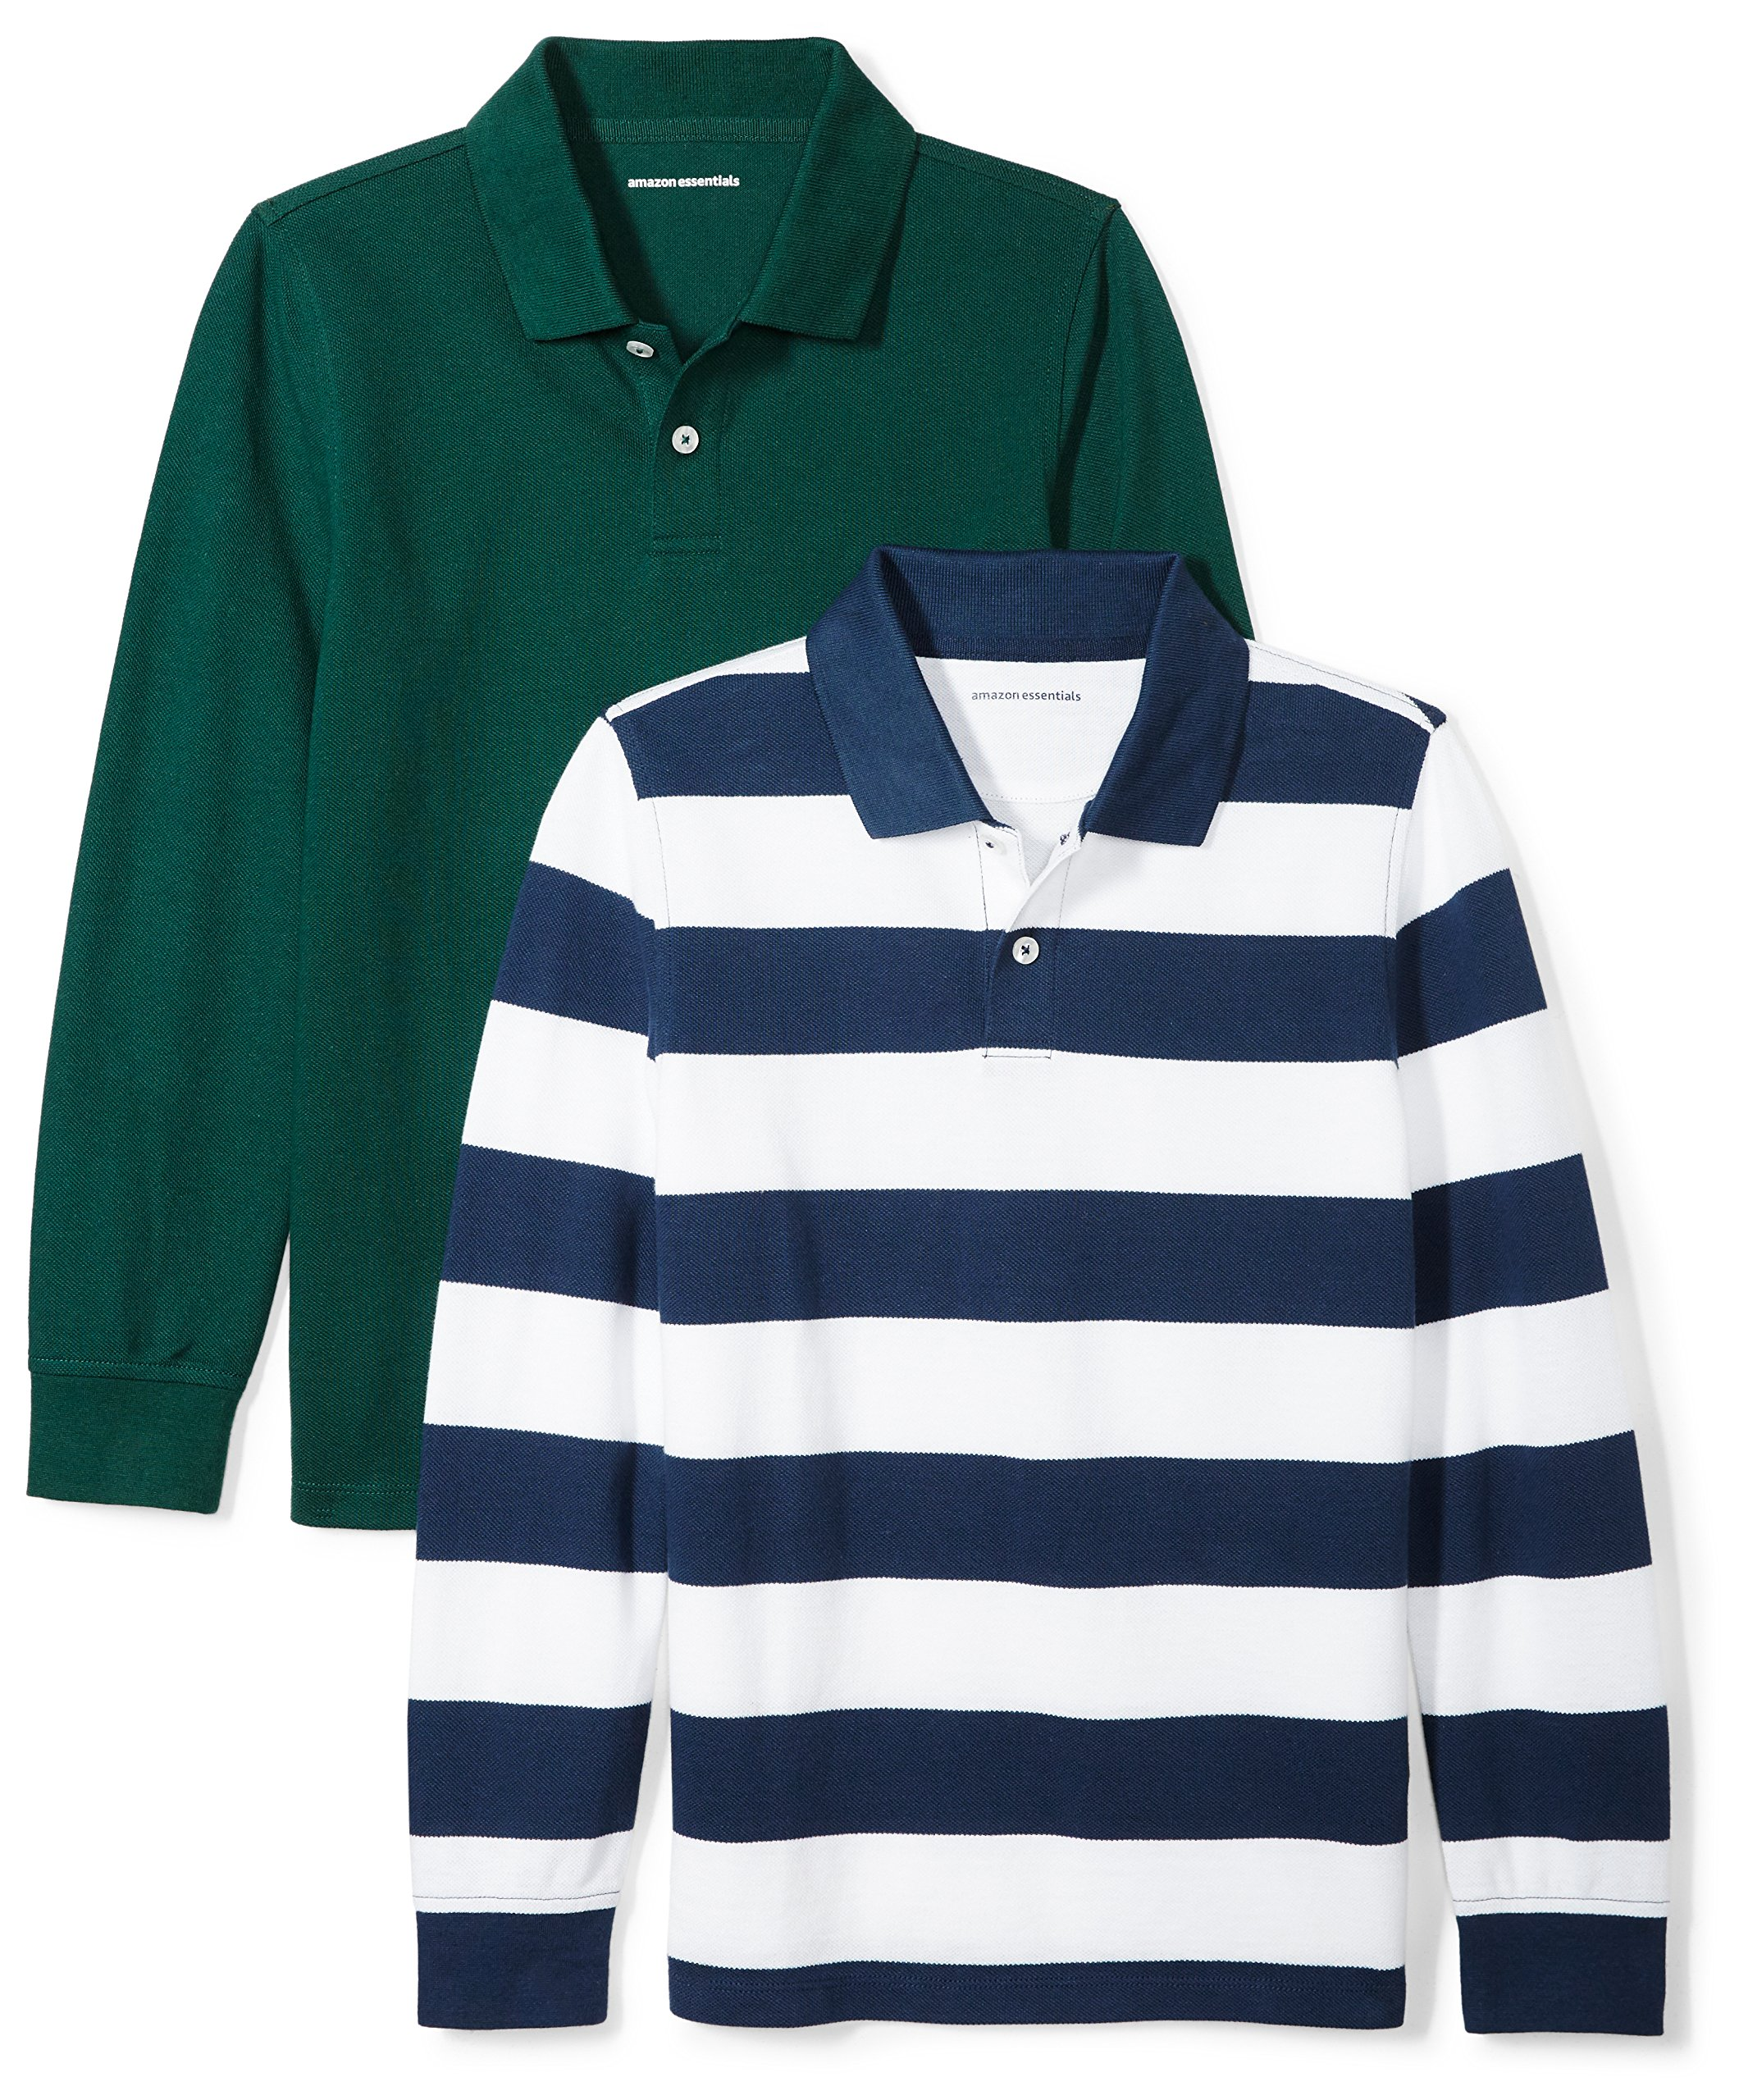 Amazon Essentials Boys' 2-Pack Long-Sleeve Pique Polo Shirt, Navy/Rugby White Stripe/Green, 4T